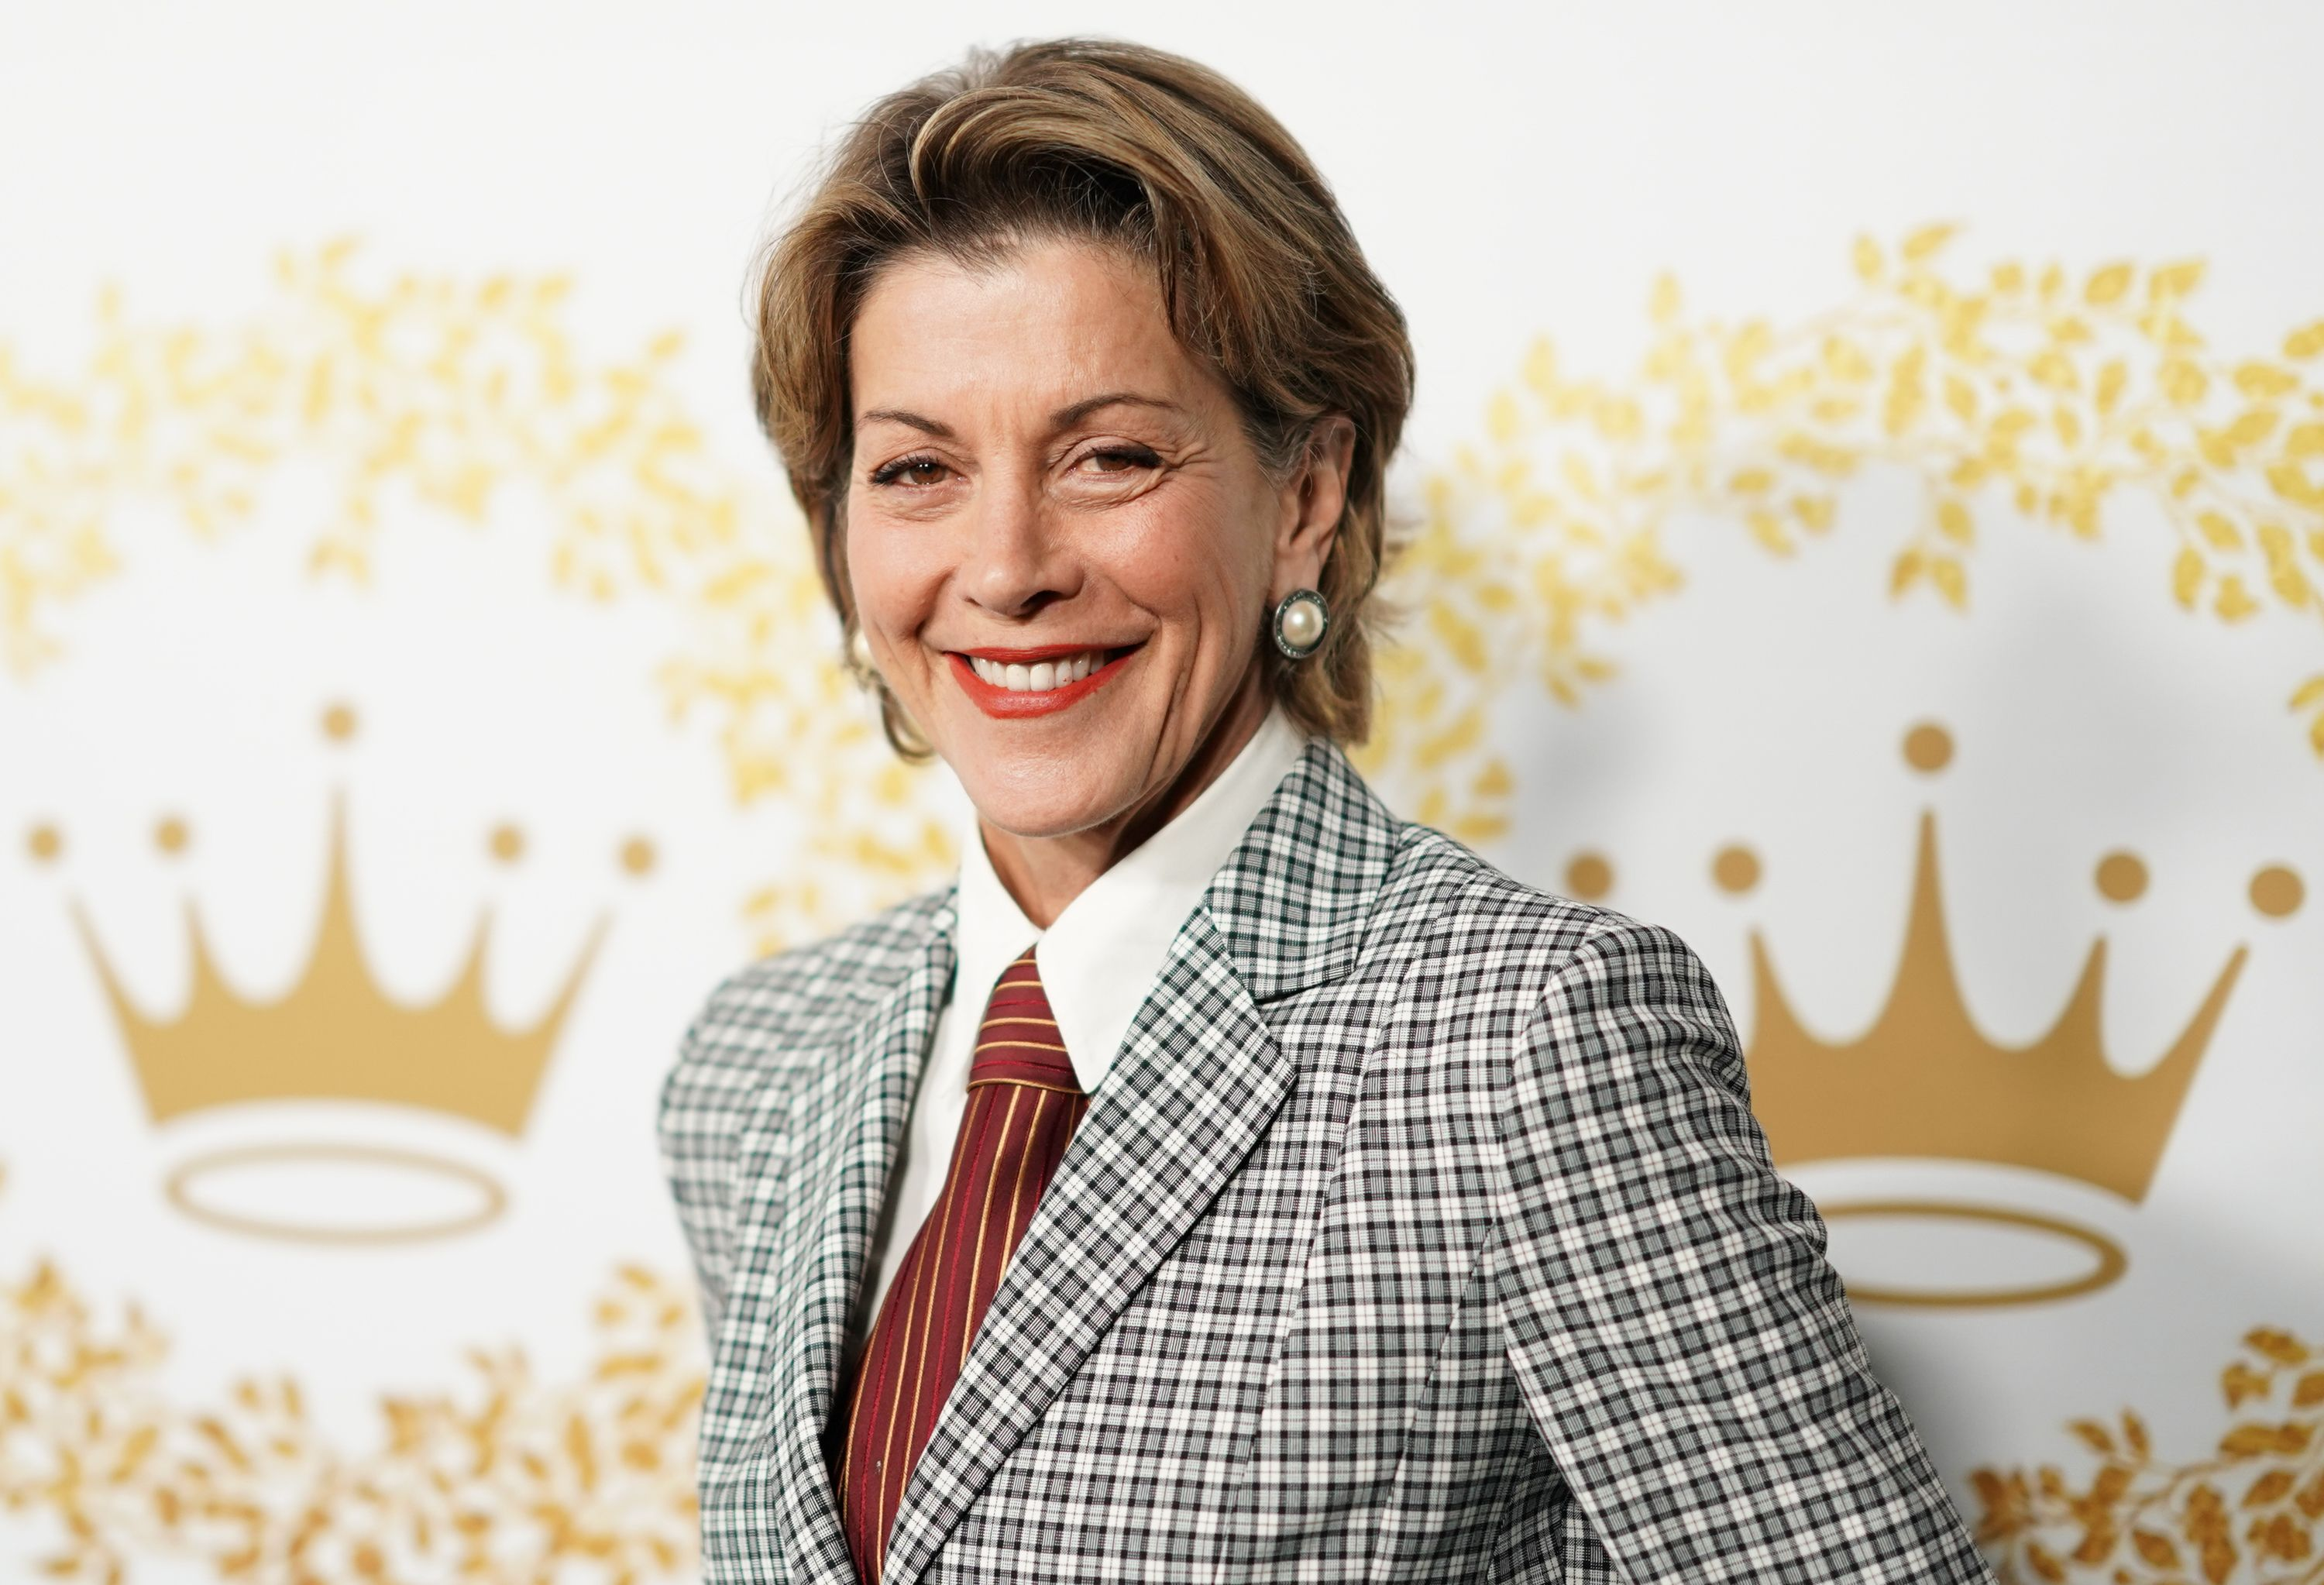 Wendie Malick at Hallmark Channel And Hallmark Movies And Mysteries 2019 Winter TCA Tour in Pasadena, California | Source: Getty Images